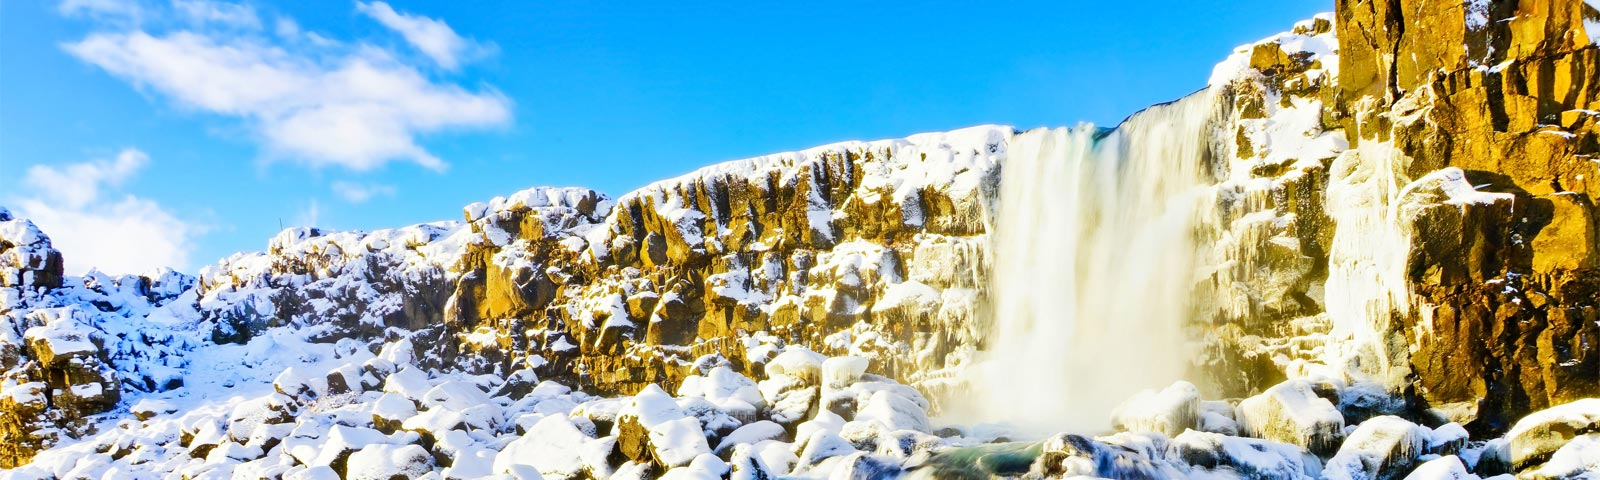 Iceland's Winter Wonderland